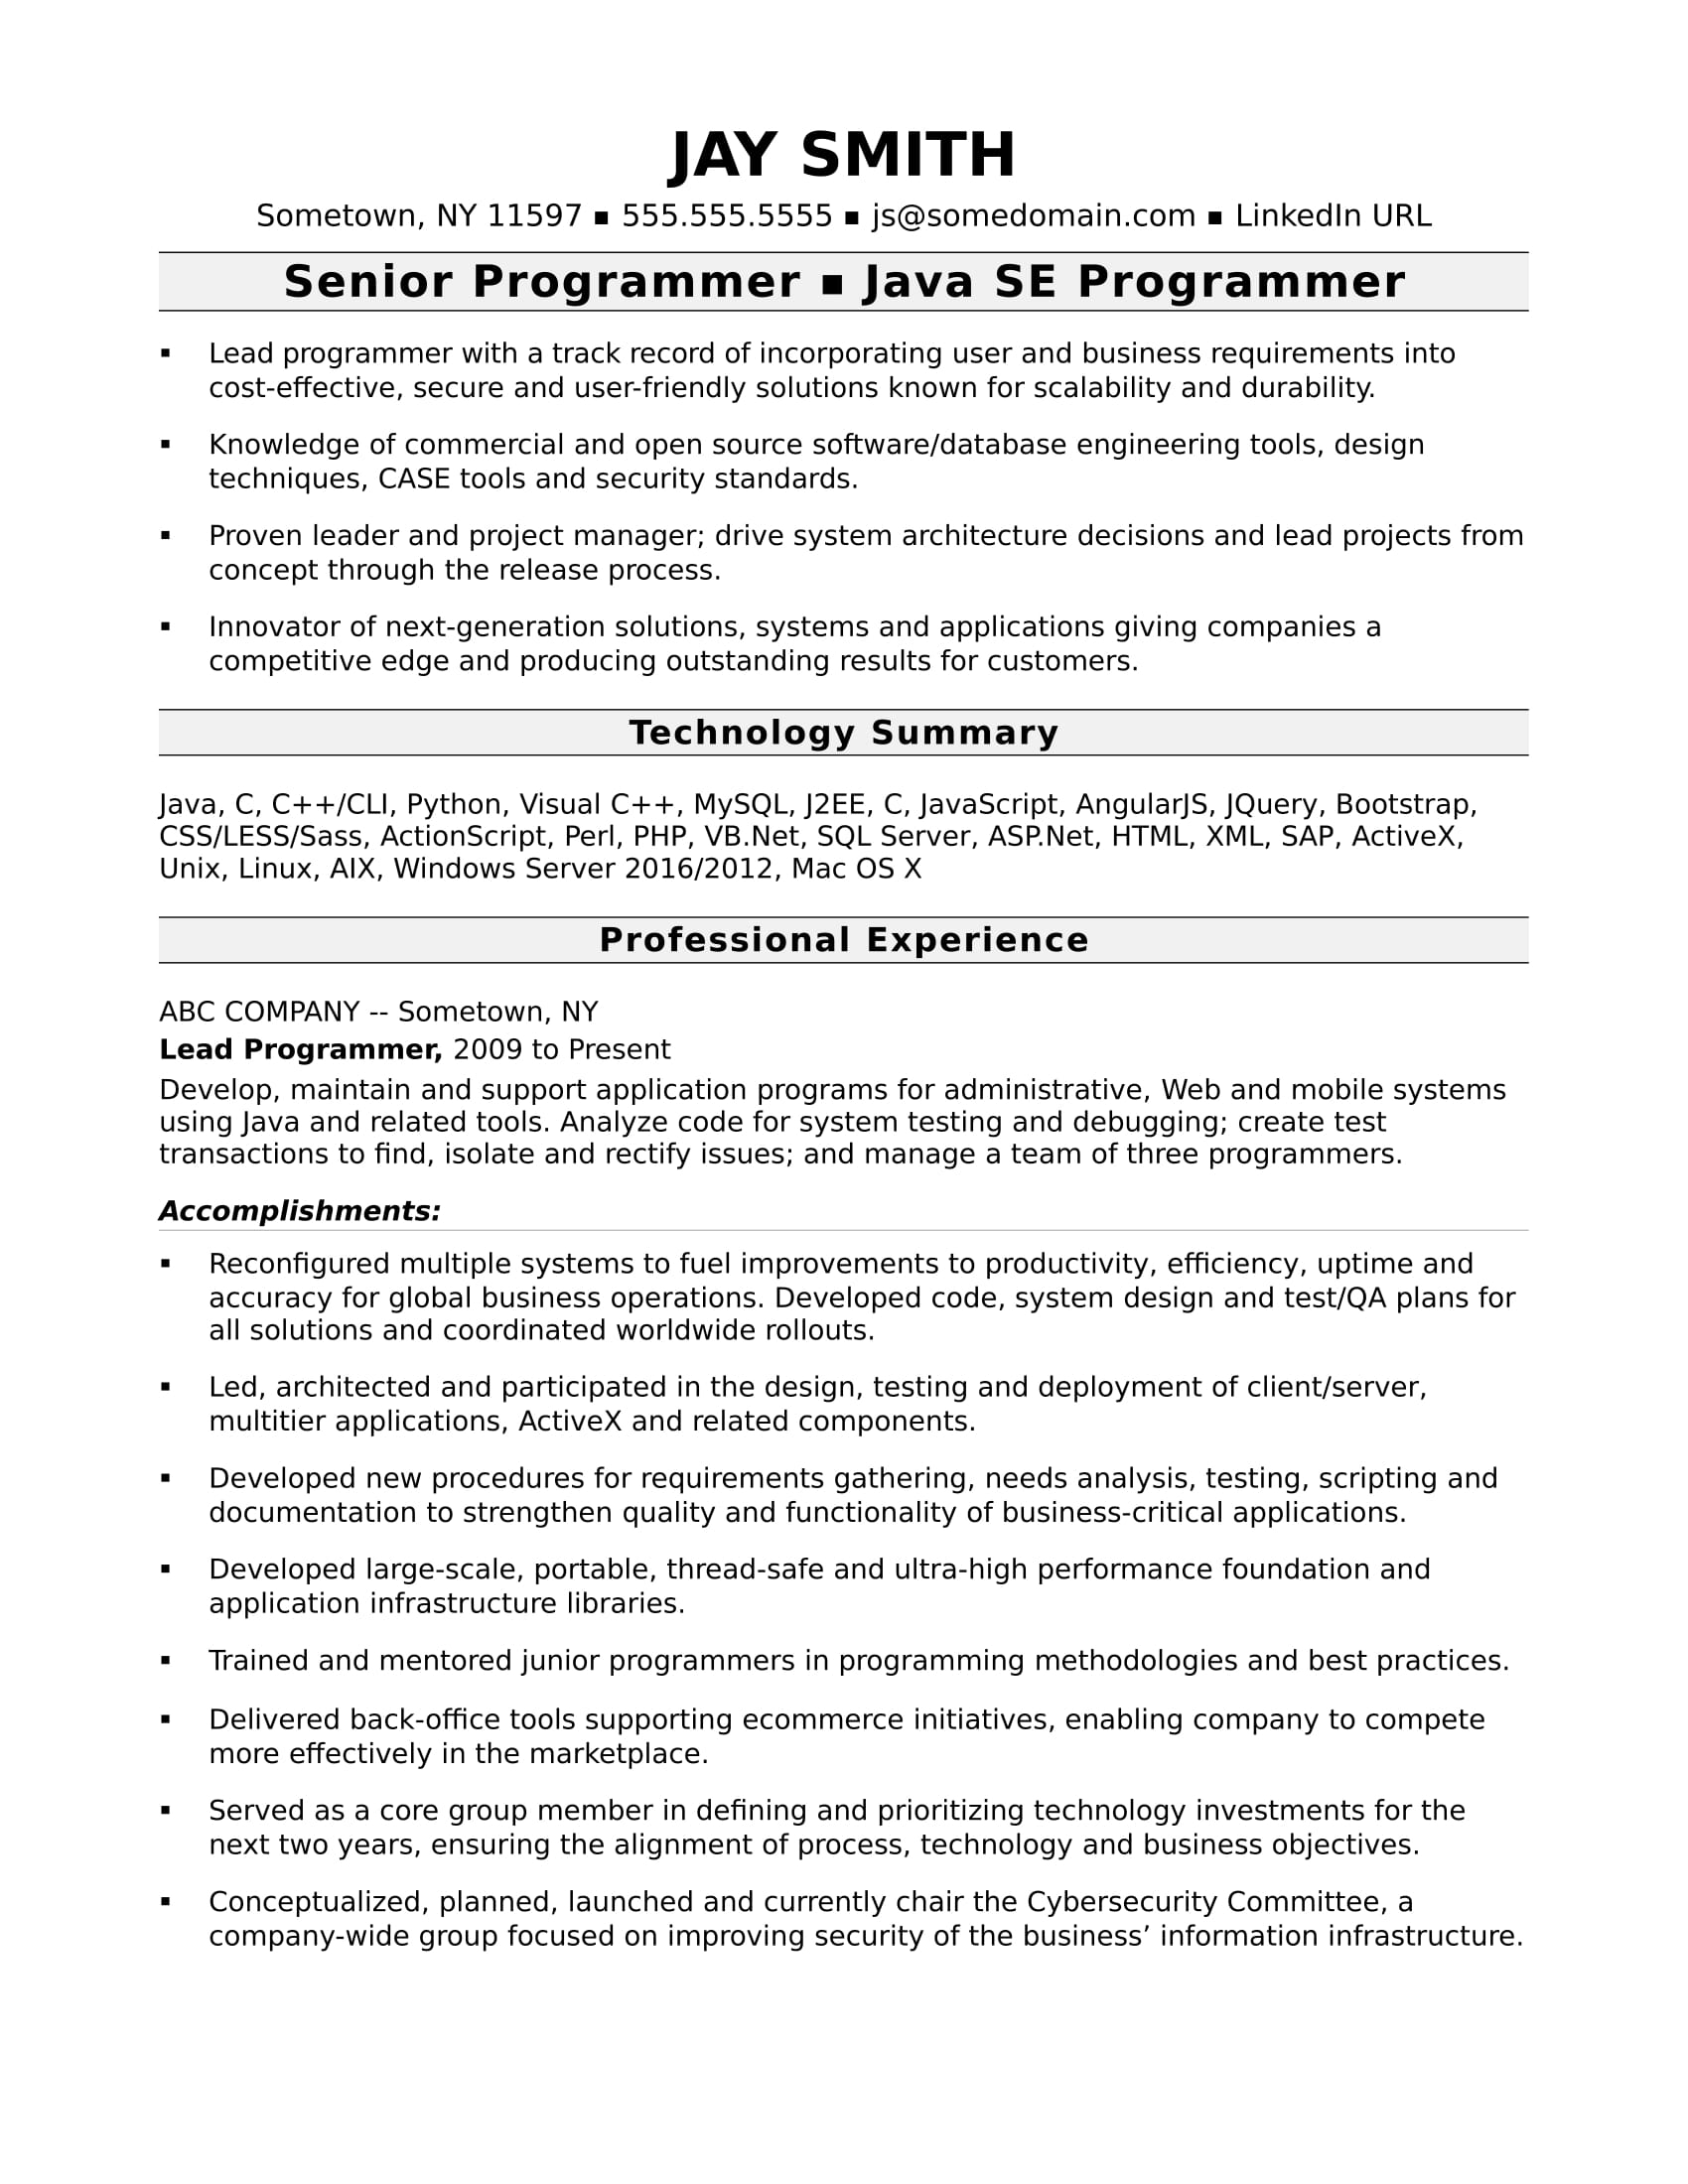 Lovely Sample Resume For An Experienced Computer Programmer  Experience Resume